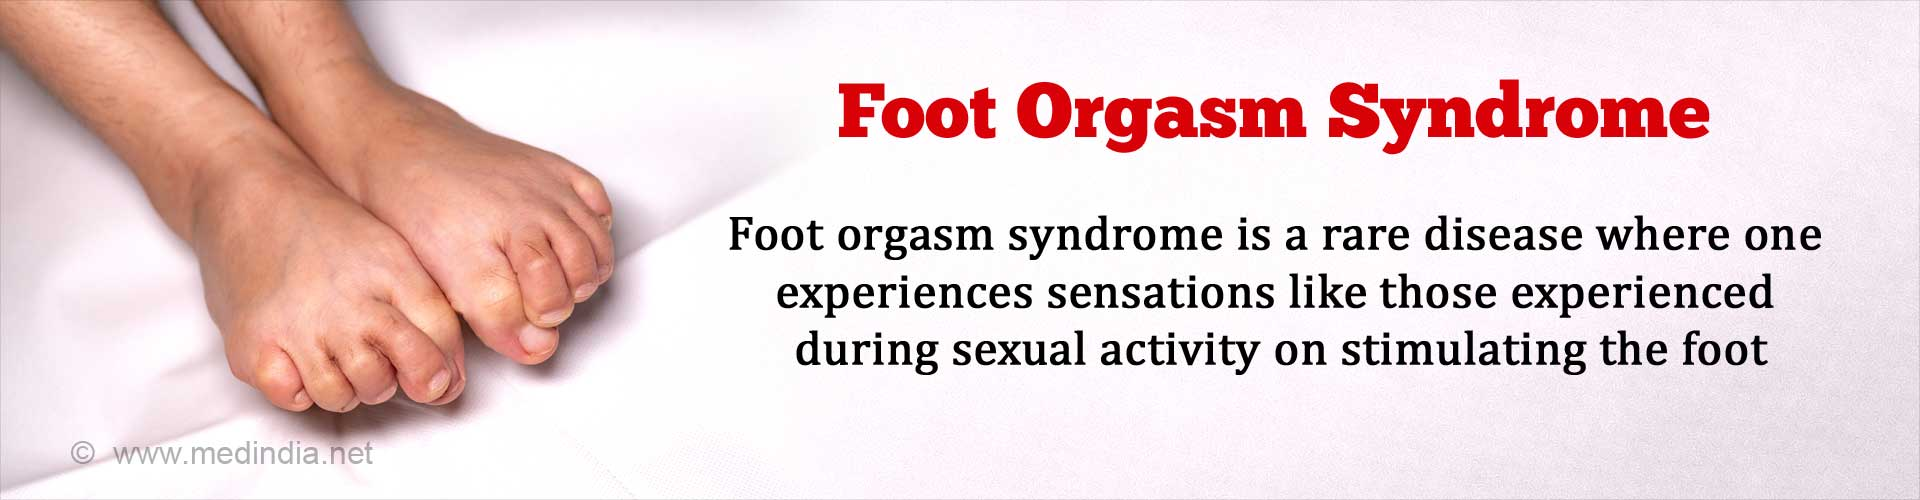 Foot Orgasm Syndrome